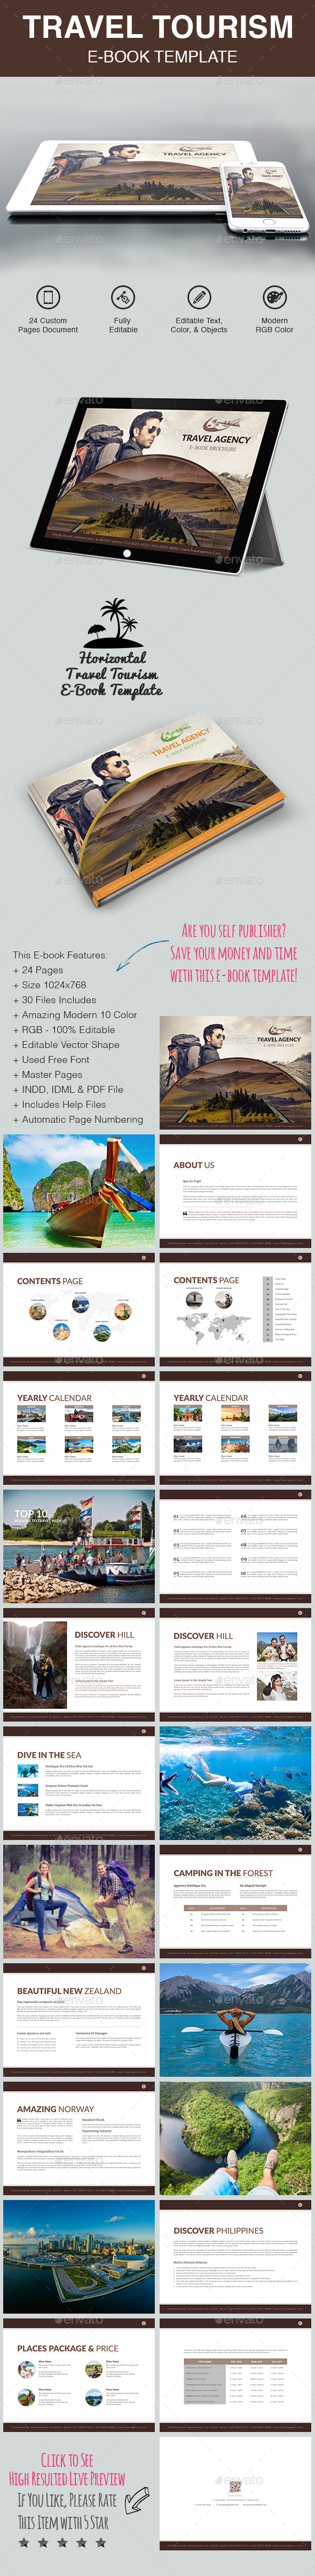 Travel Tourism E-Book Template - Digital Books ePublishing